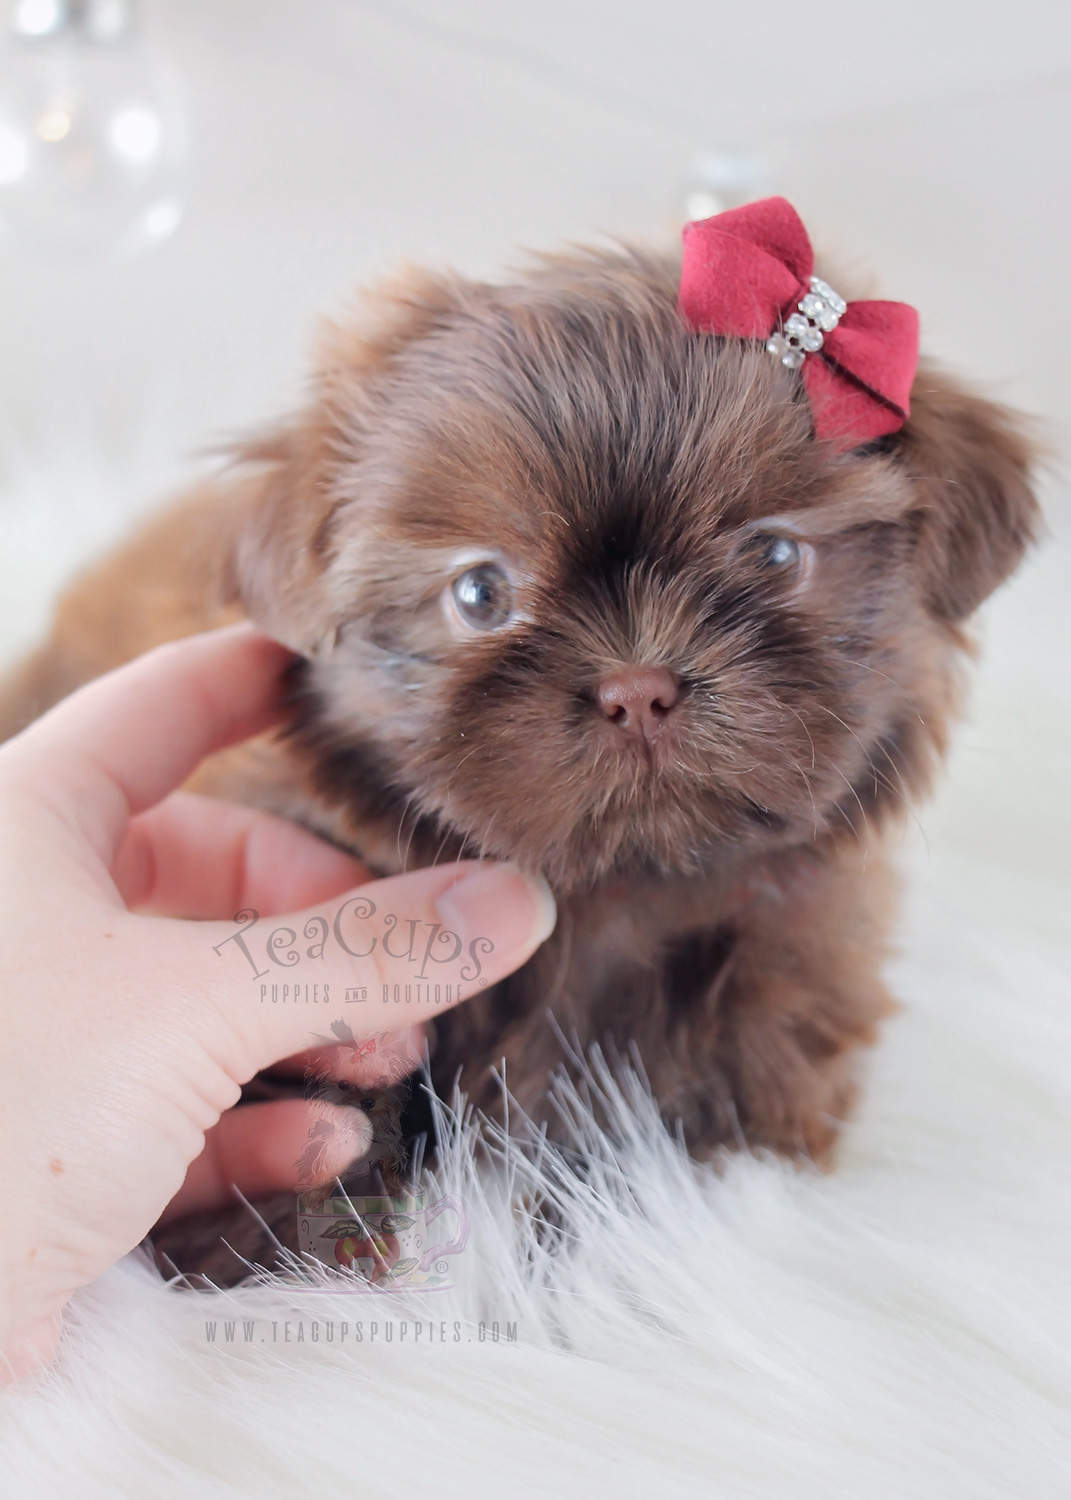 For Sale #332 Teacup Puppies Shih Tzu Puppy